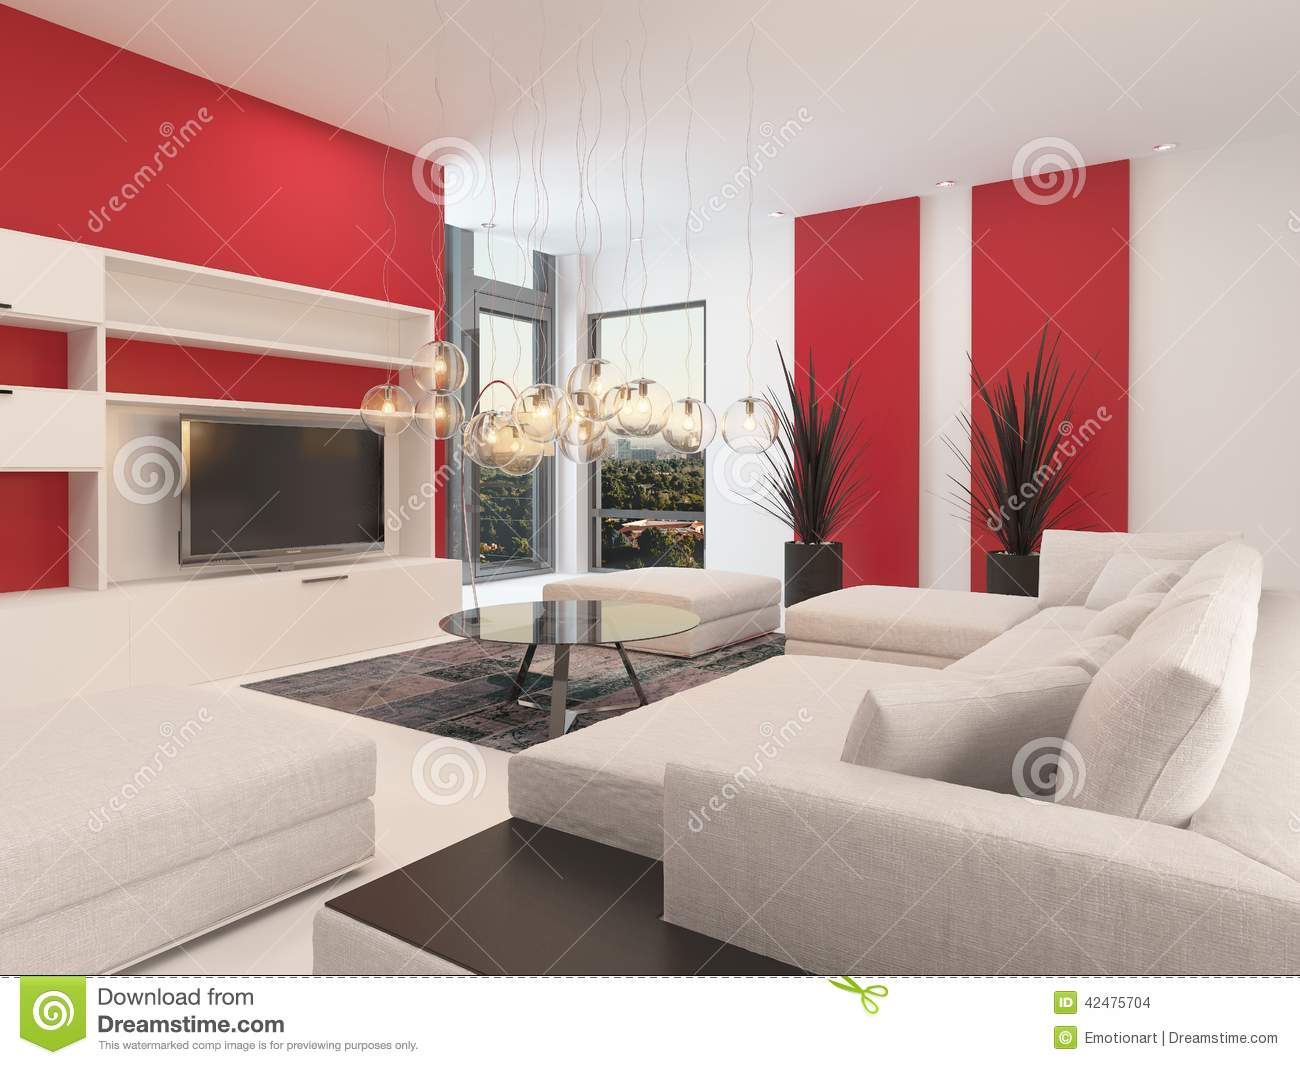 https://thumbs.dreamstime.com/z/modern-white-living-room-red-accents-interior-walls-large-comfortable-upholstered-lounge-suite-ottomans-42475704.jpg